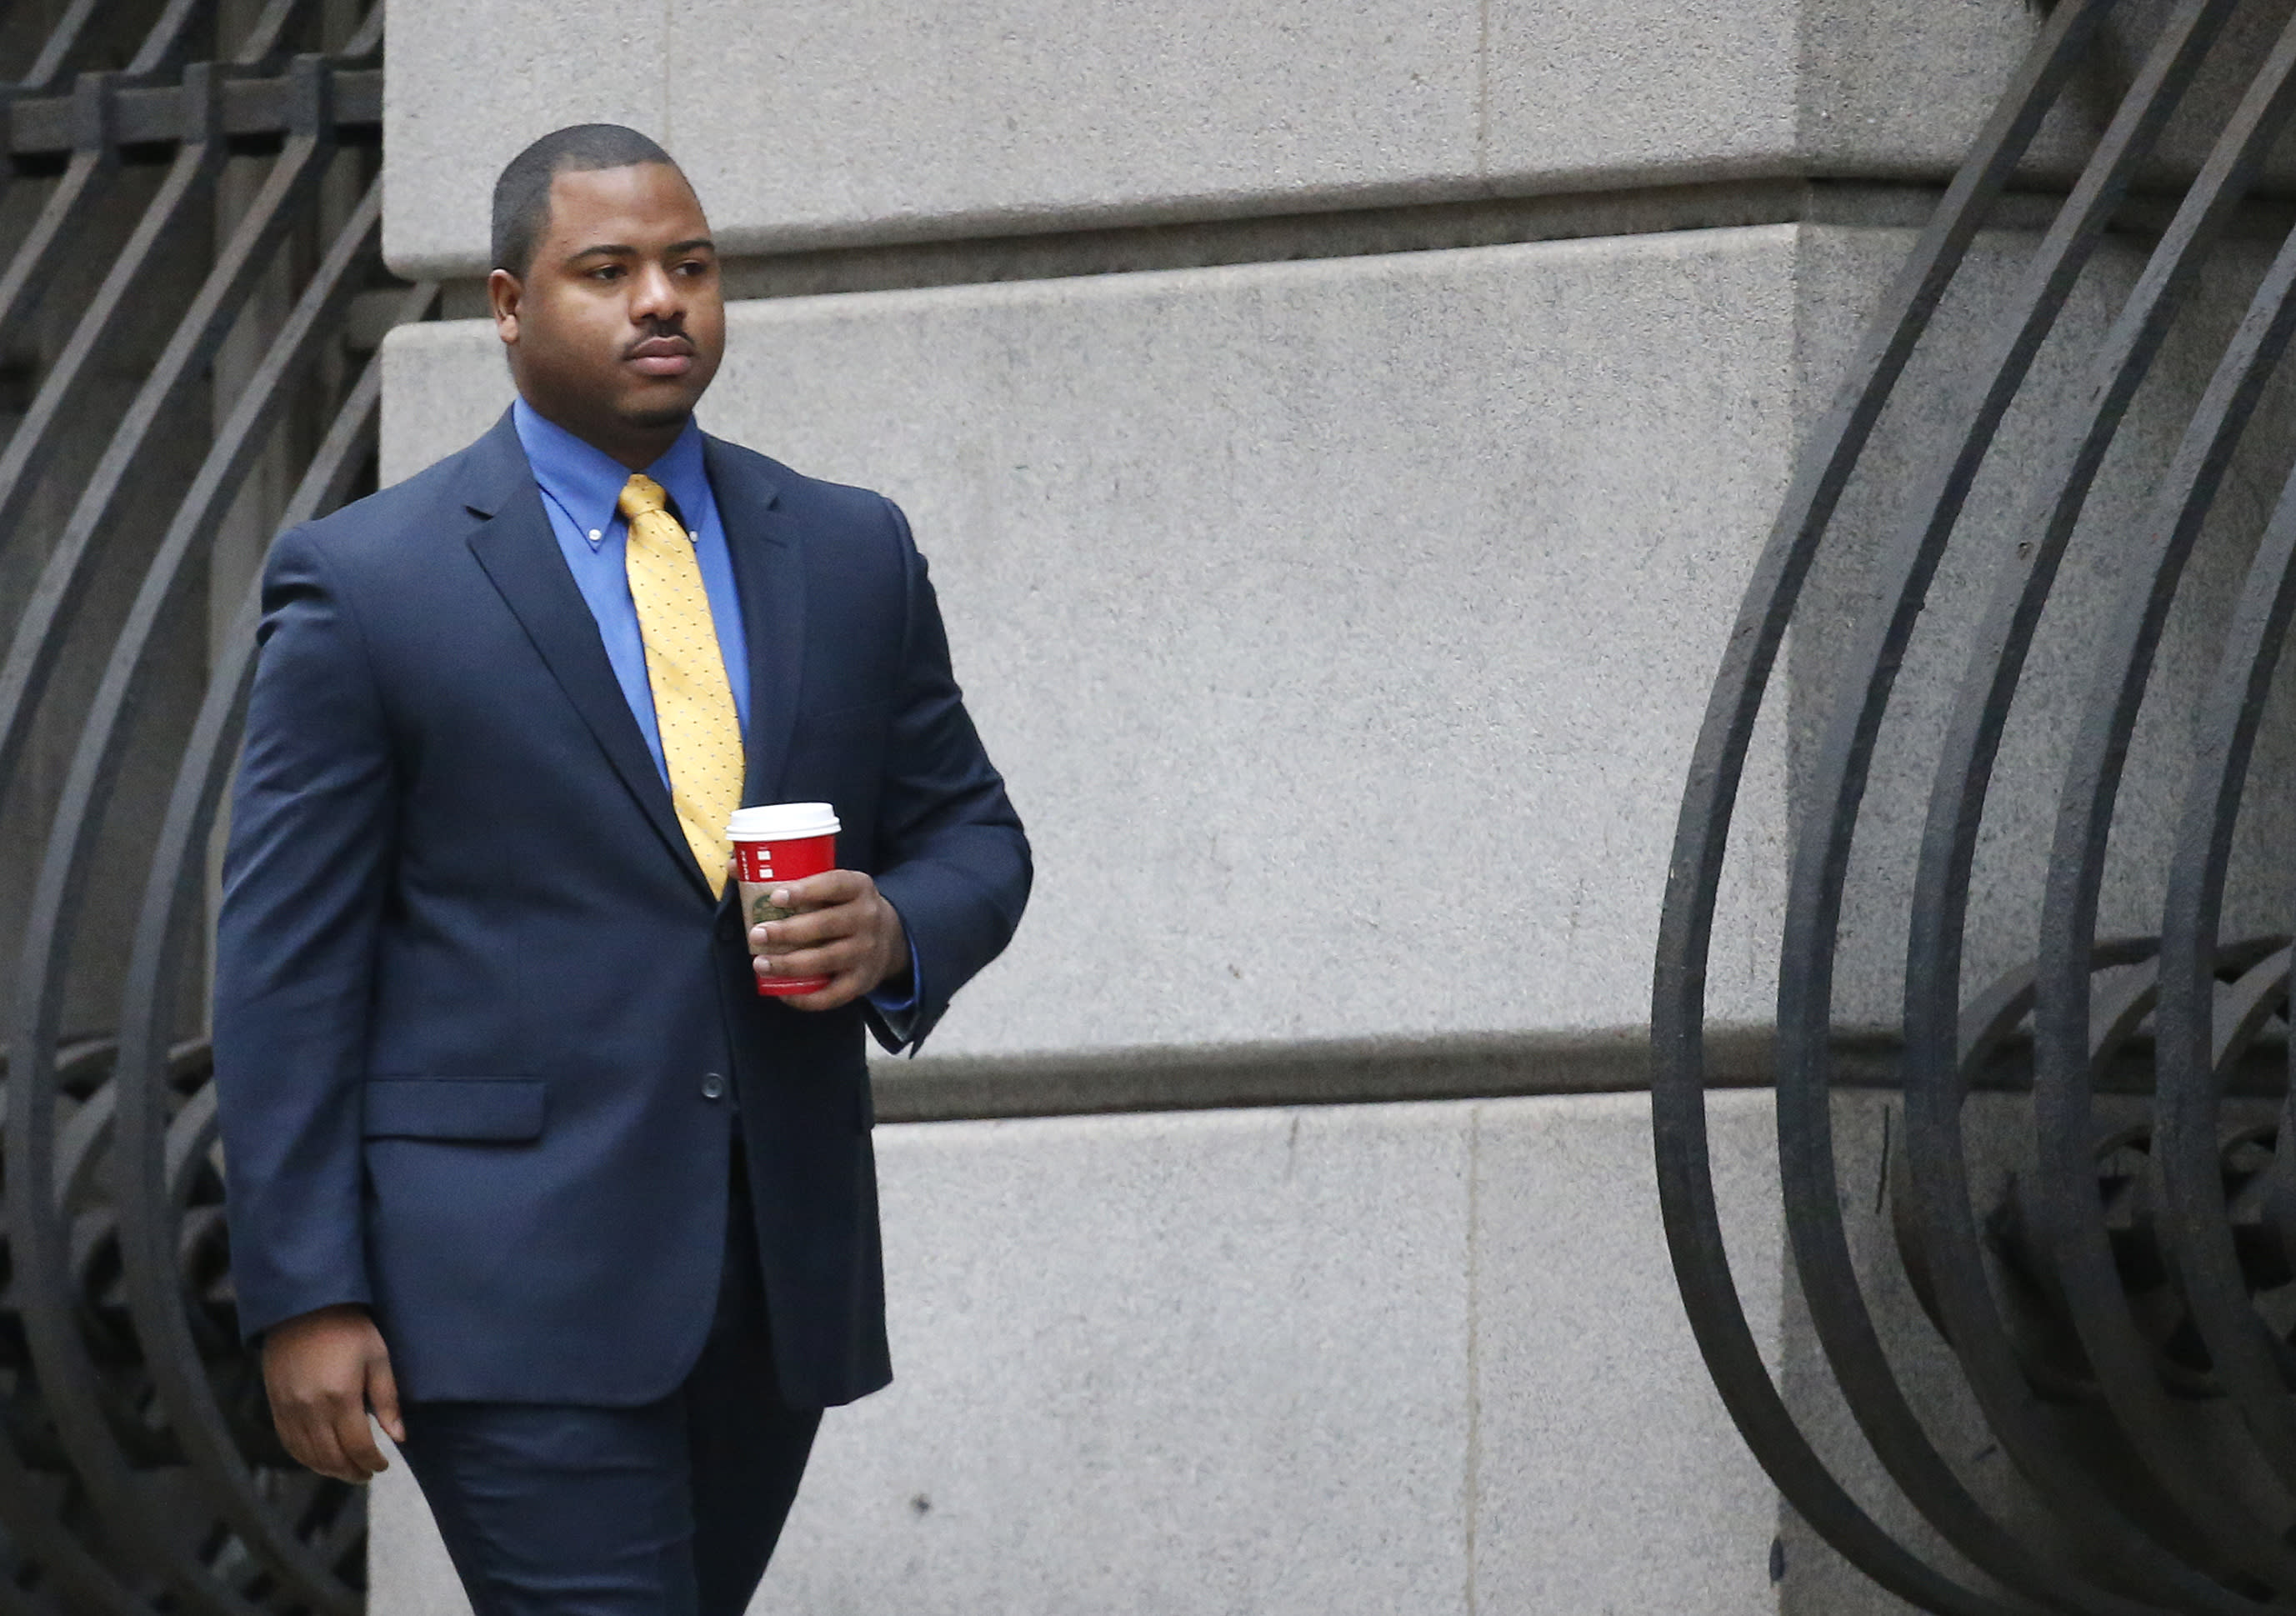 High stakes for Baltimore as Freddie Gray trials begin